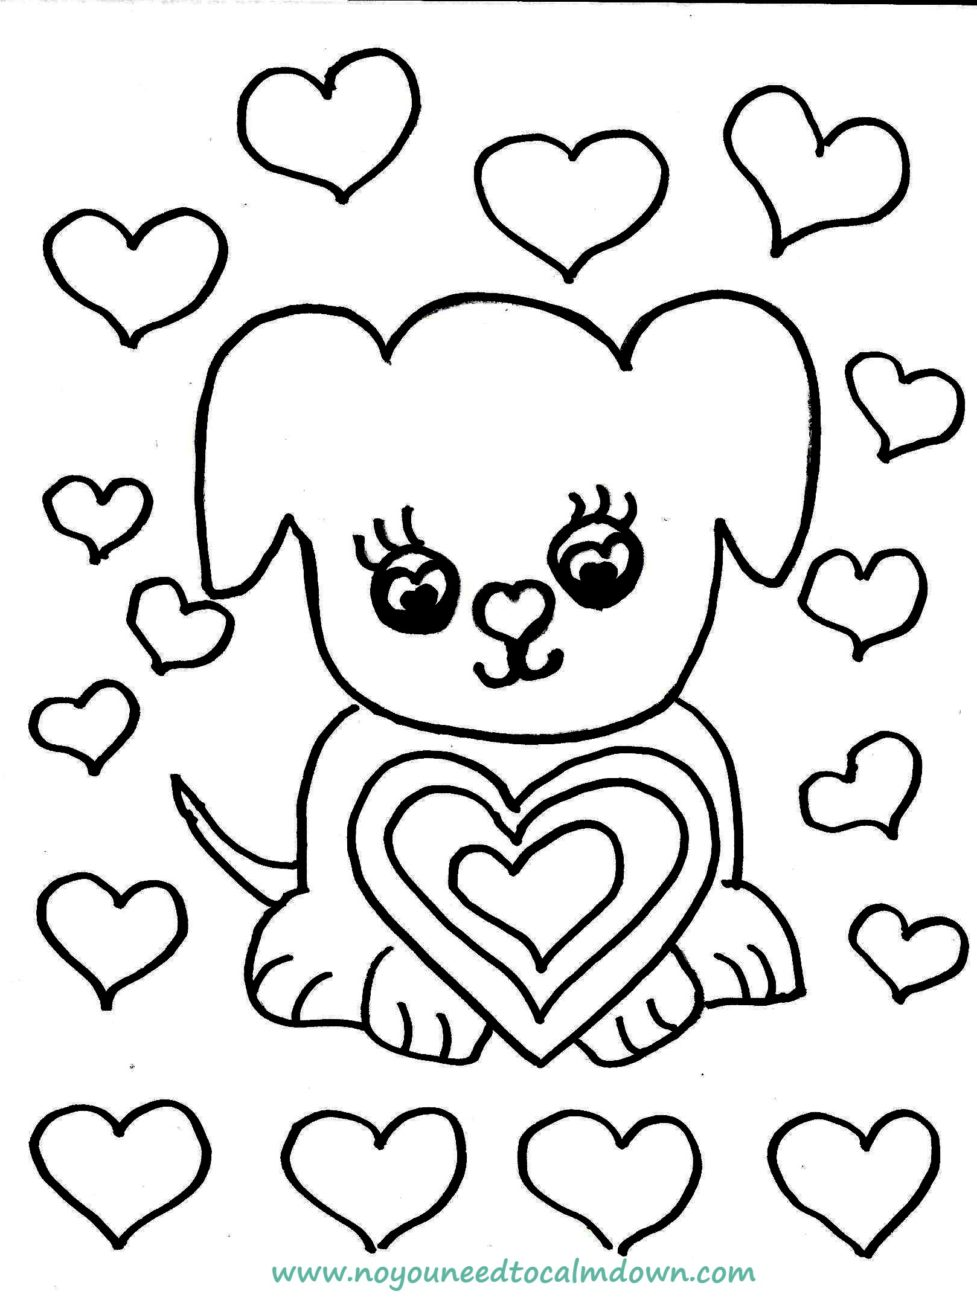 Cute Dog Valentine's Day Coloring Page - Free Printable ...